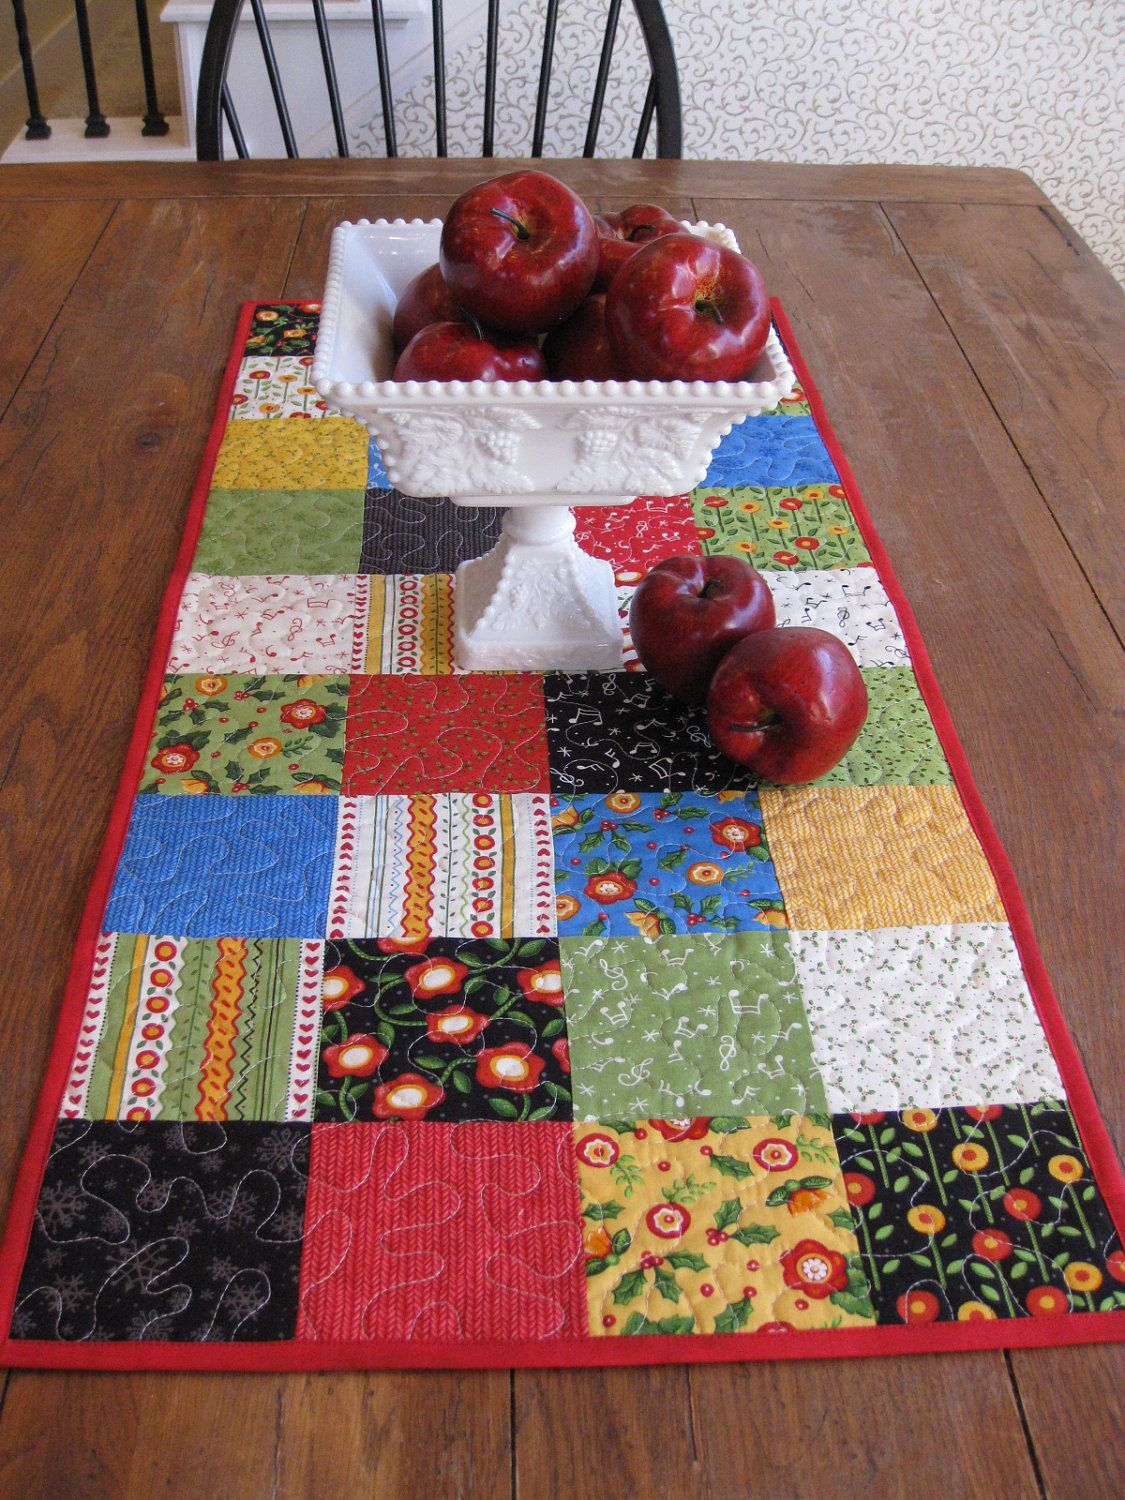 31+ Arts and crafts table runner ideas in 2021